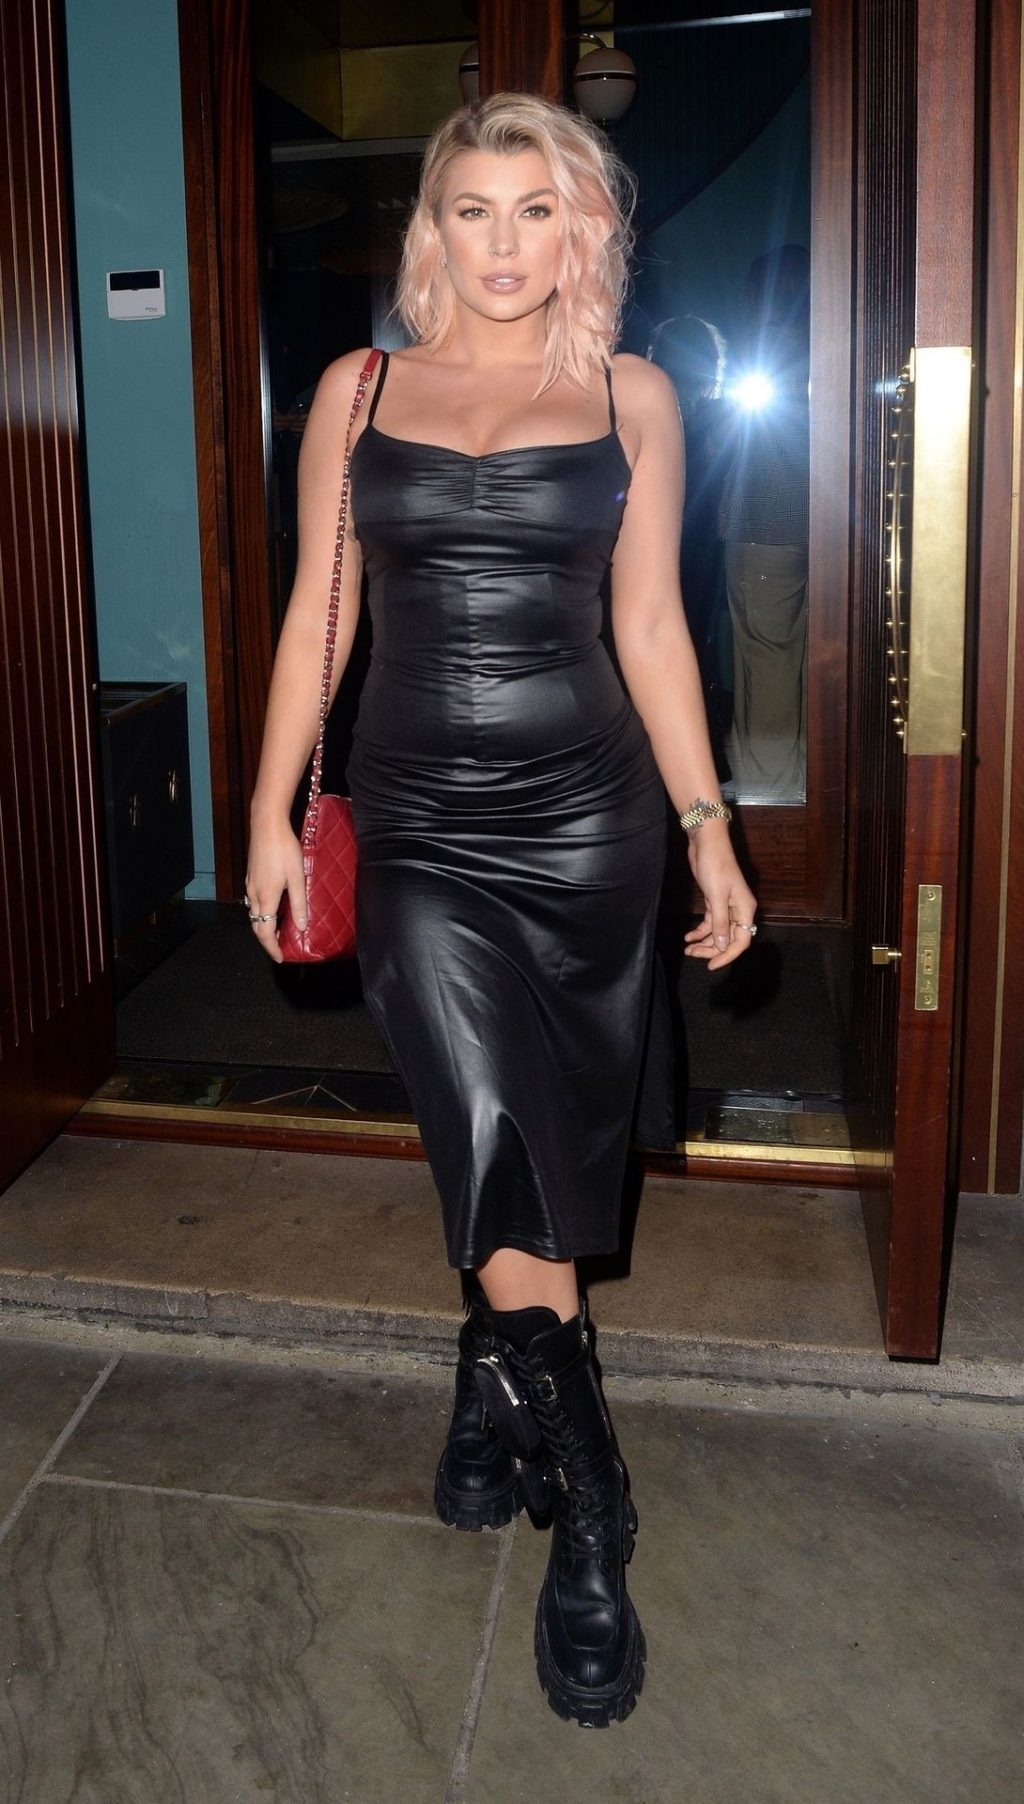 Olivia Buckland Seen at the PrettyLittleThing Launch in London (35 Photos)